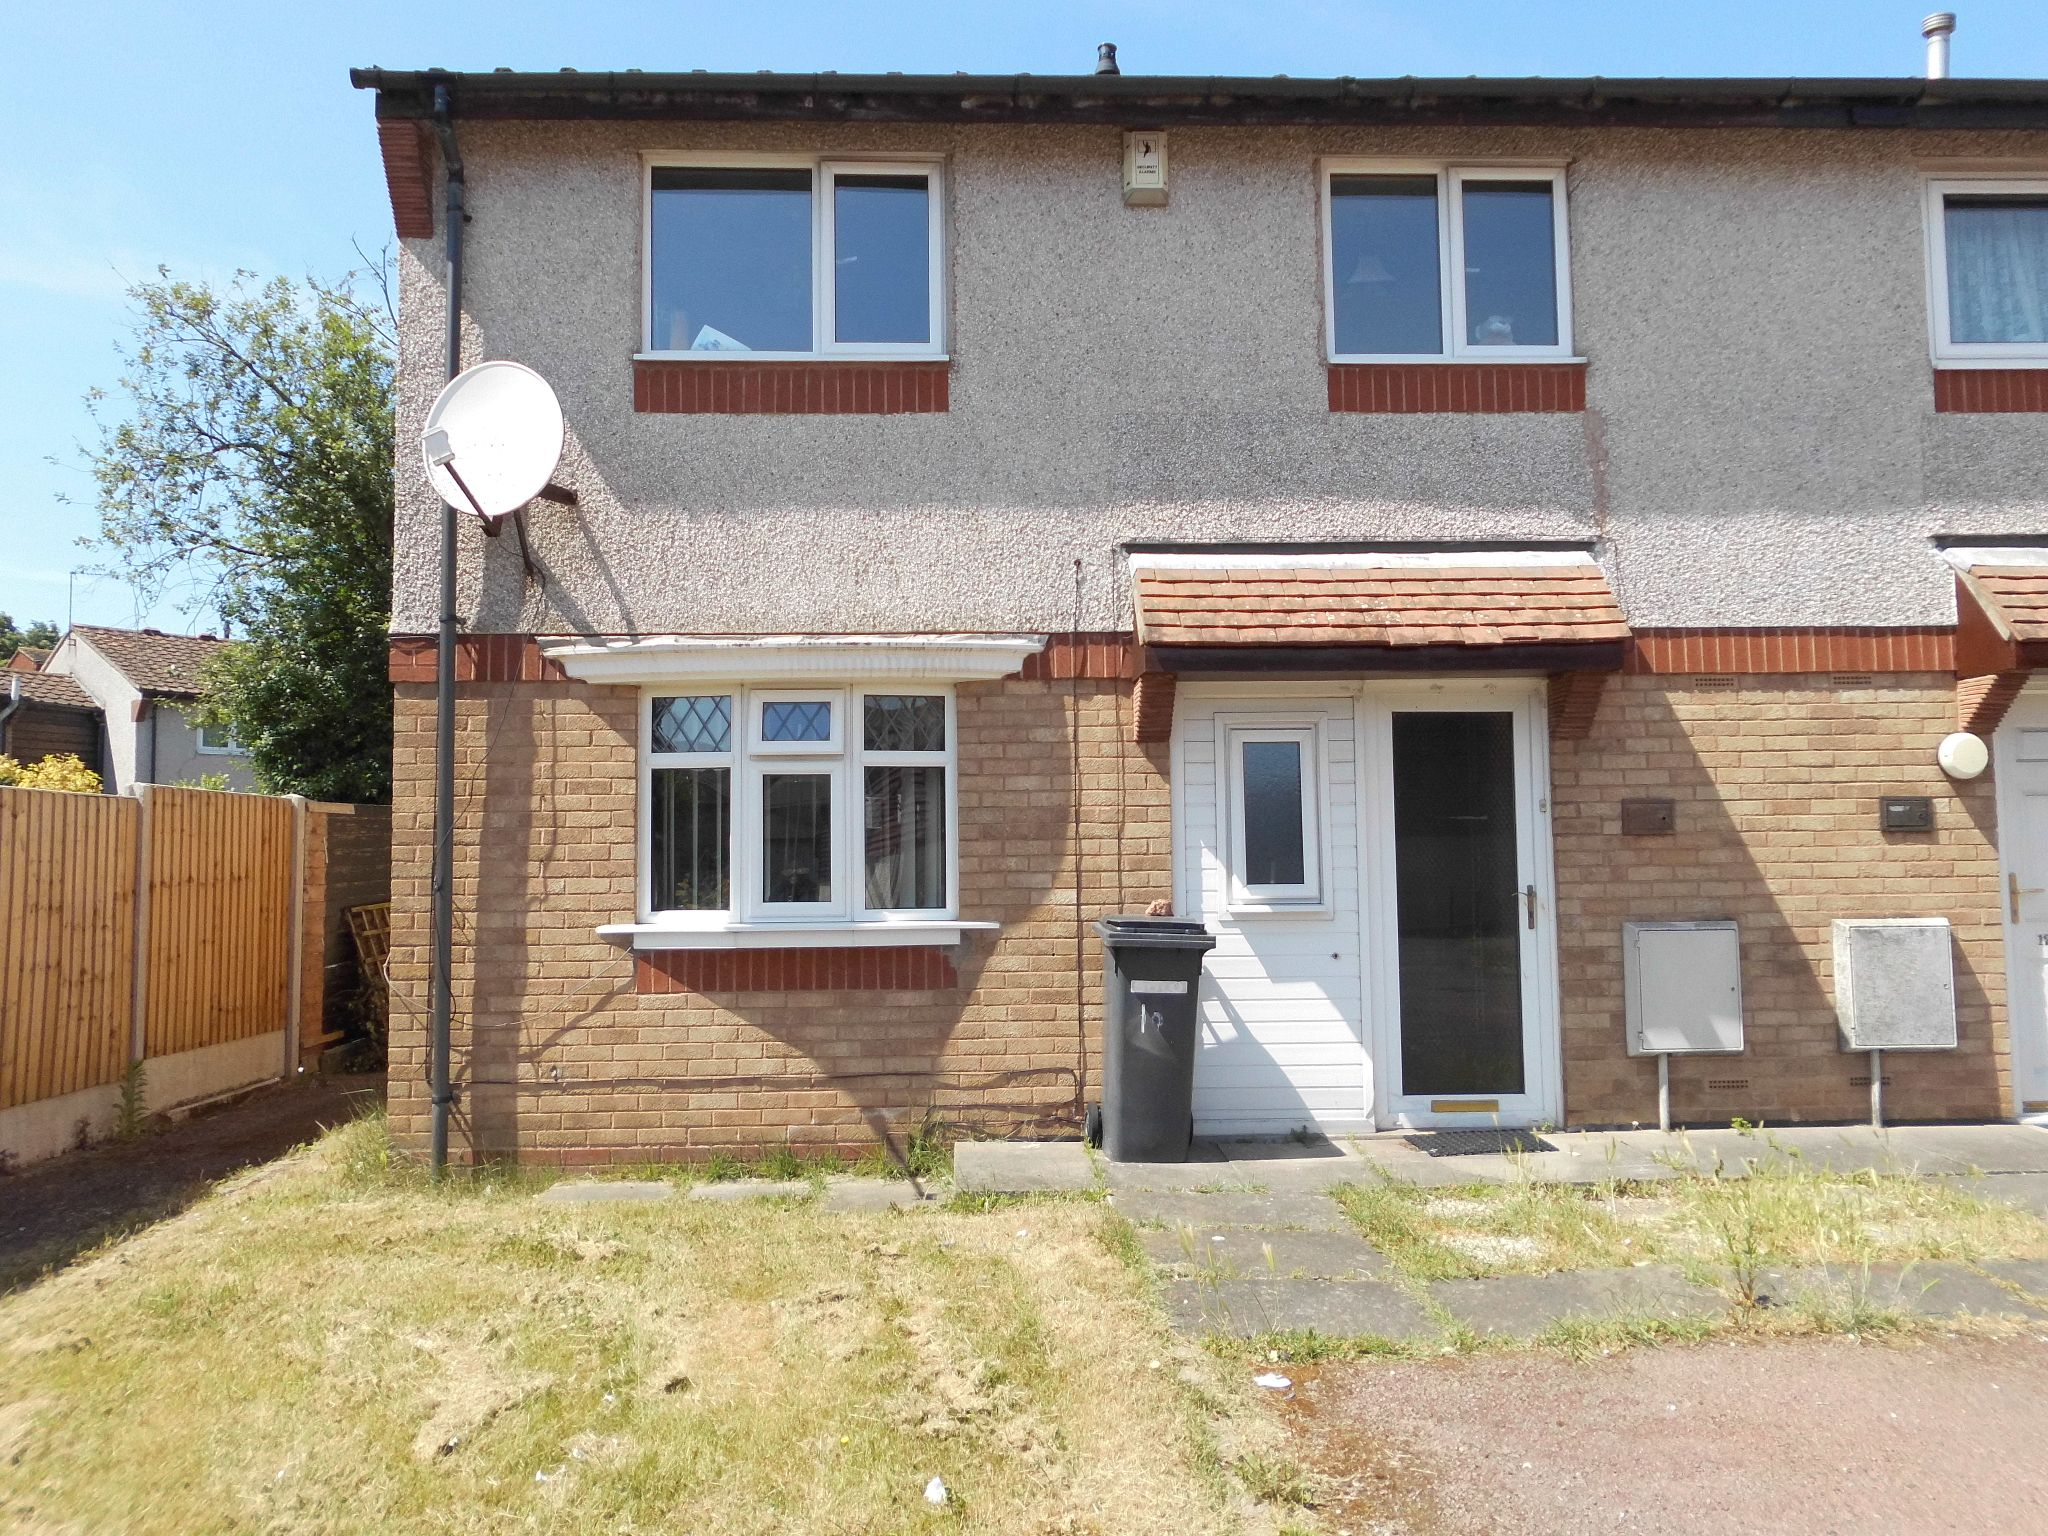 3 bedroom semi-detached house SSTC in Leicester - Photograph 1.